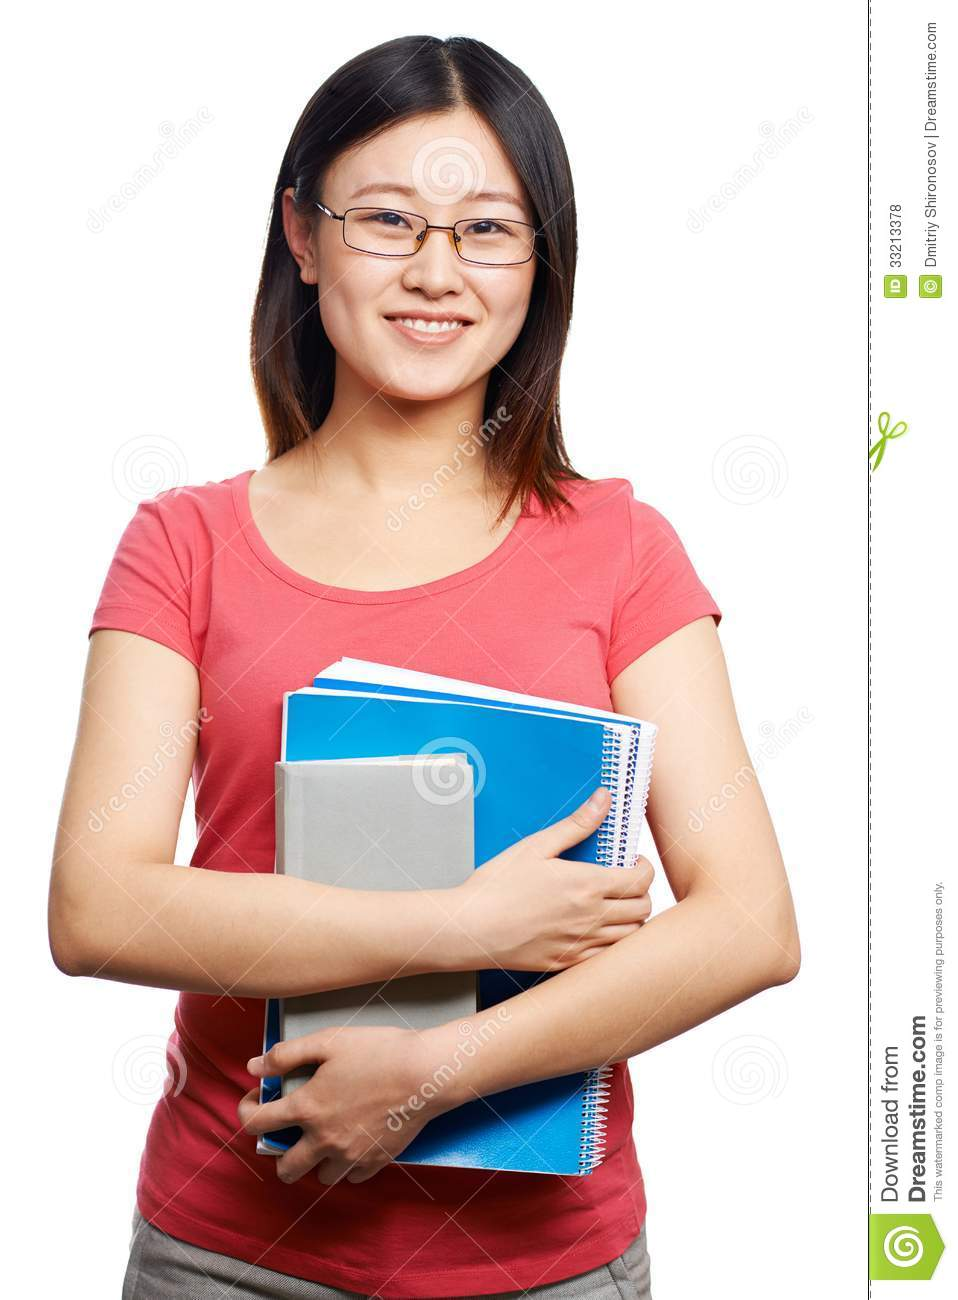 College Student Royalty Free Stock Photos - Image: 33213378 Happy High School Student Clipart